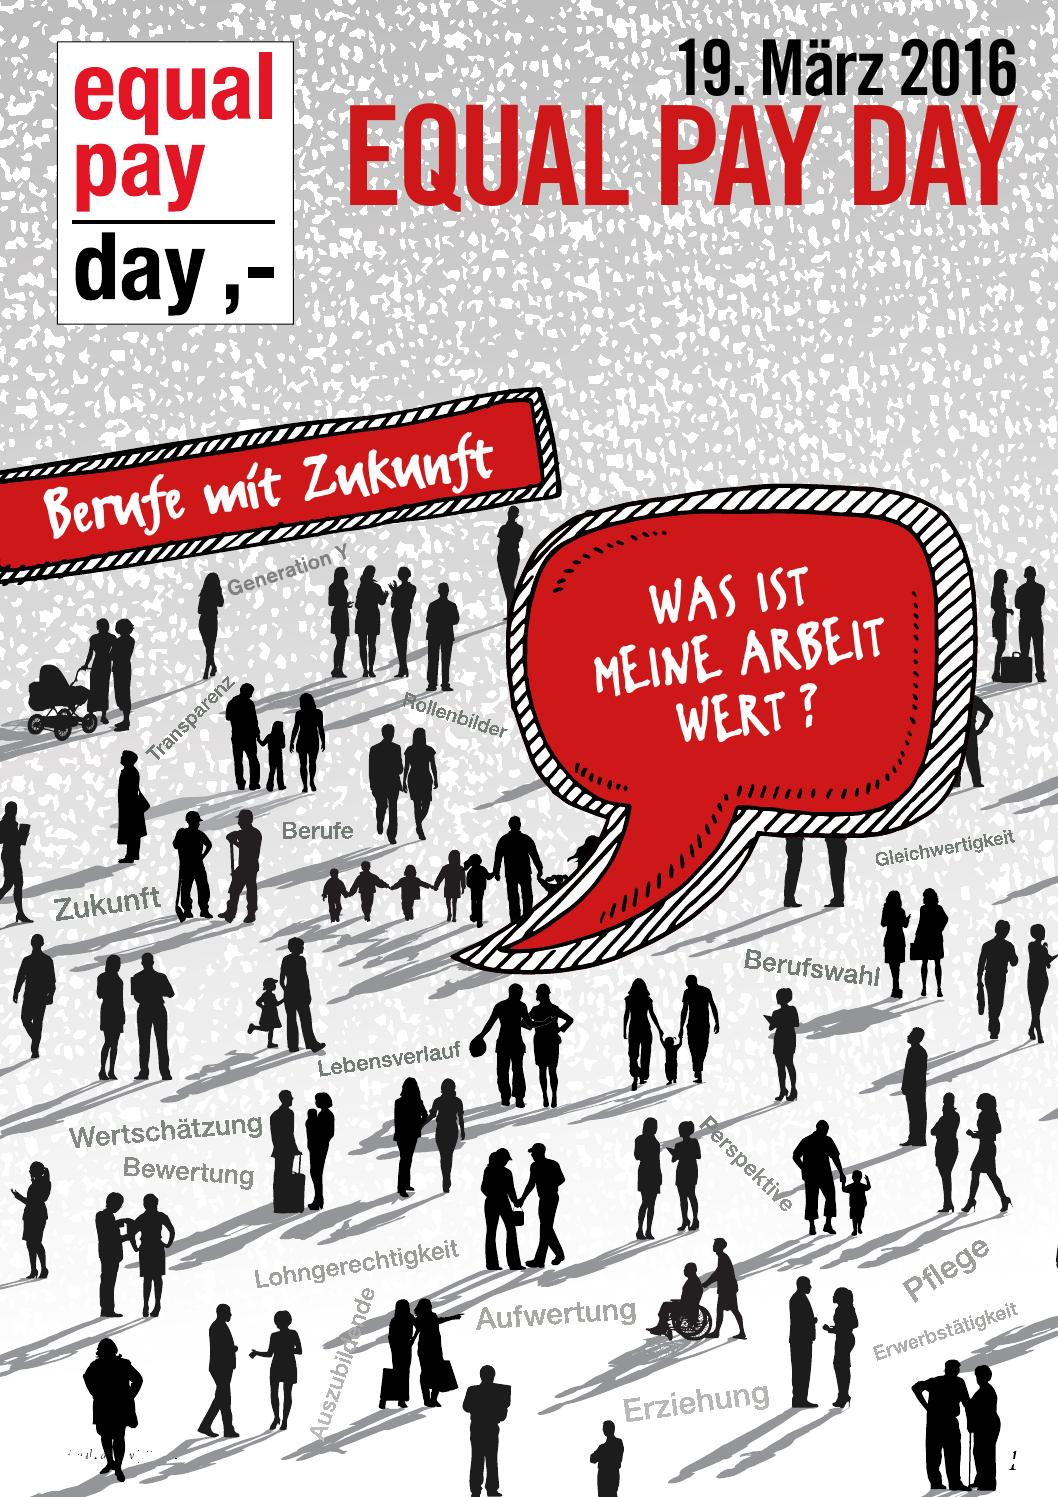 Equal Pay Day Journal 2016 by BPW Germany e.V. - issuu